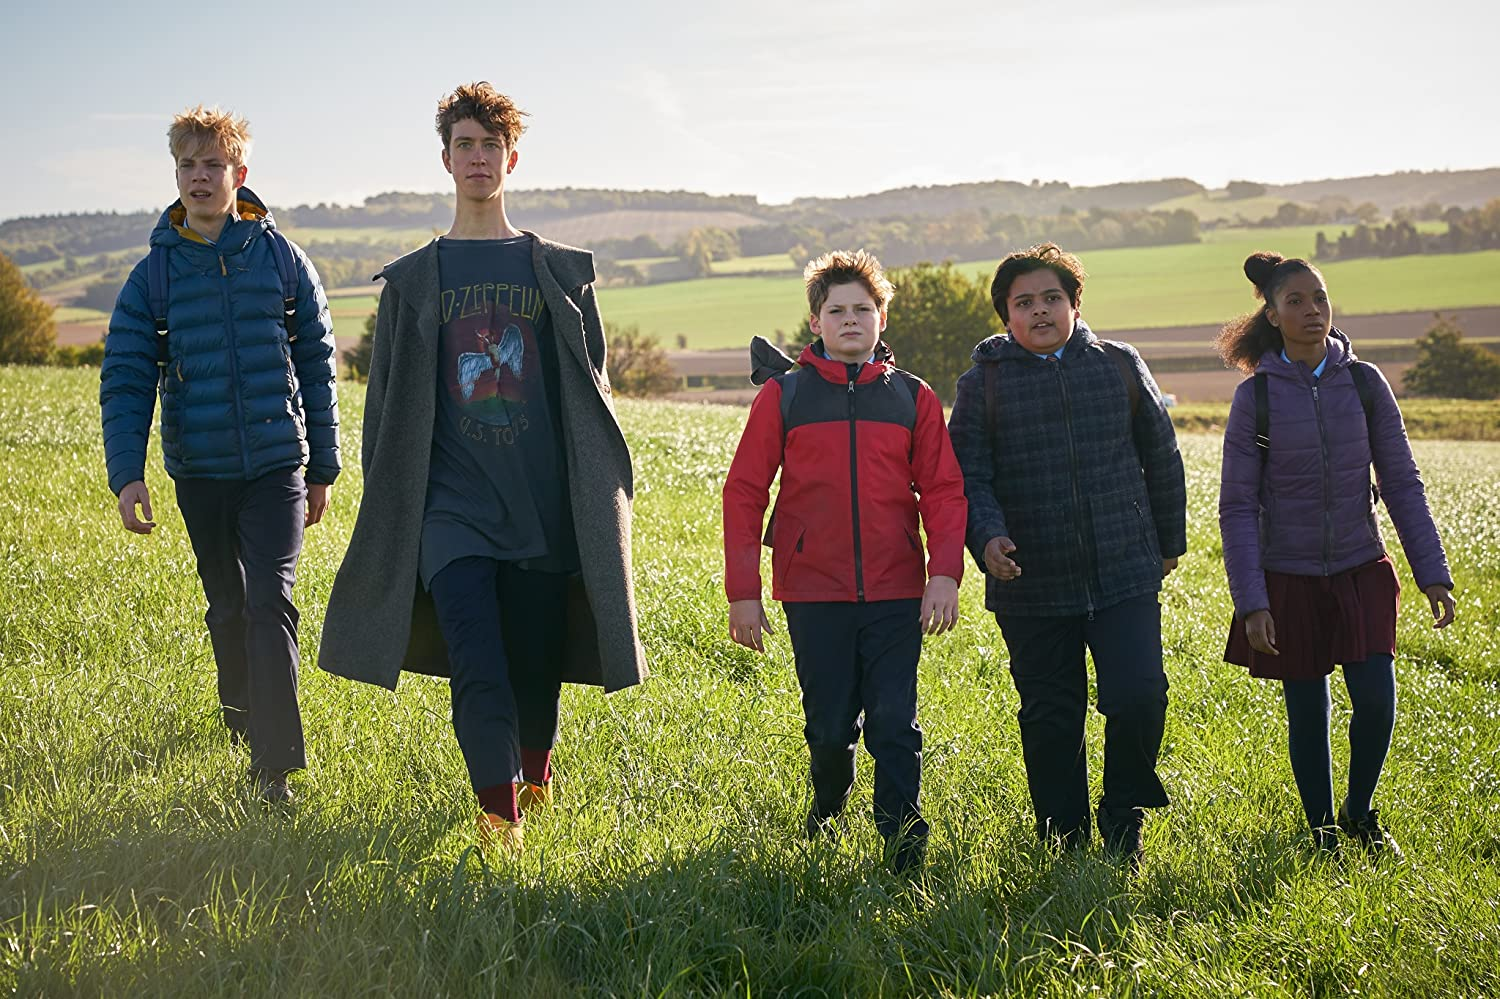 Angus Imrie, Louis Ashbourne Serkis, Tom Taylor, Rhianna Dorris, and Dean Chaumoo in The Kid Who Would Be King (2019)